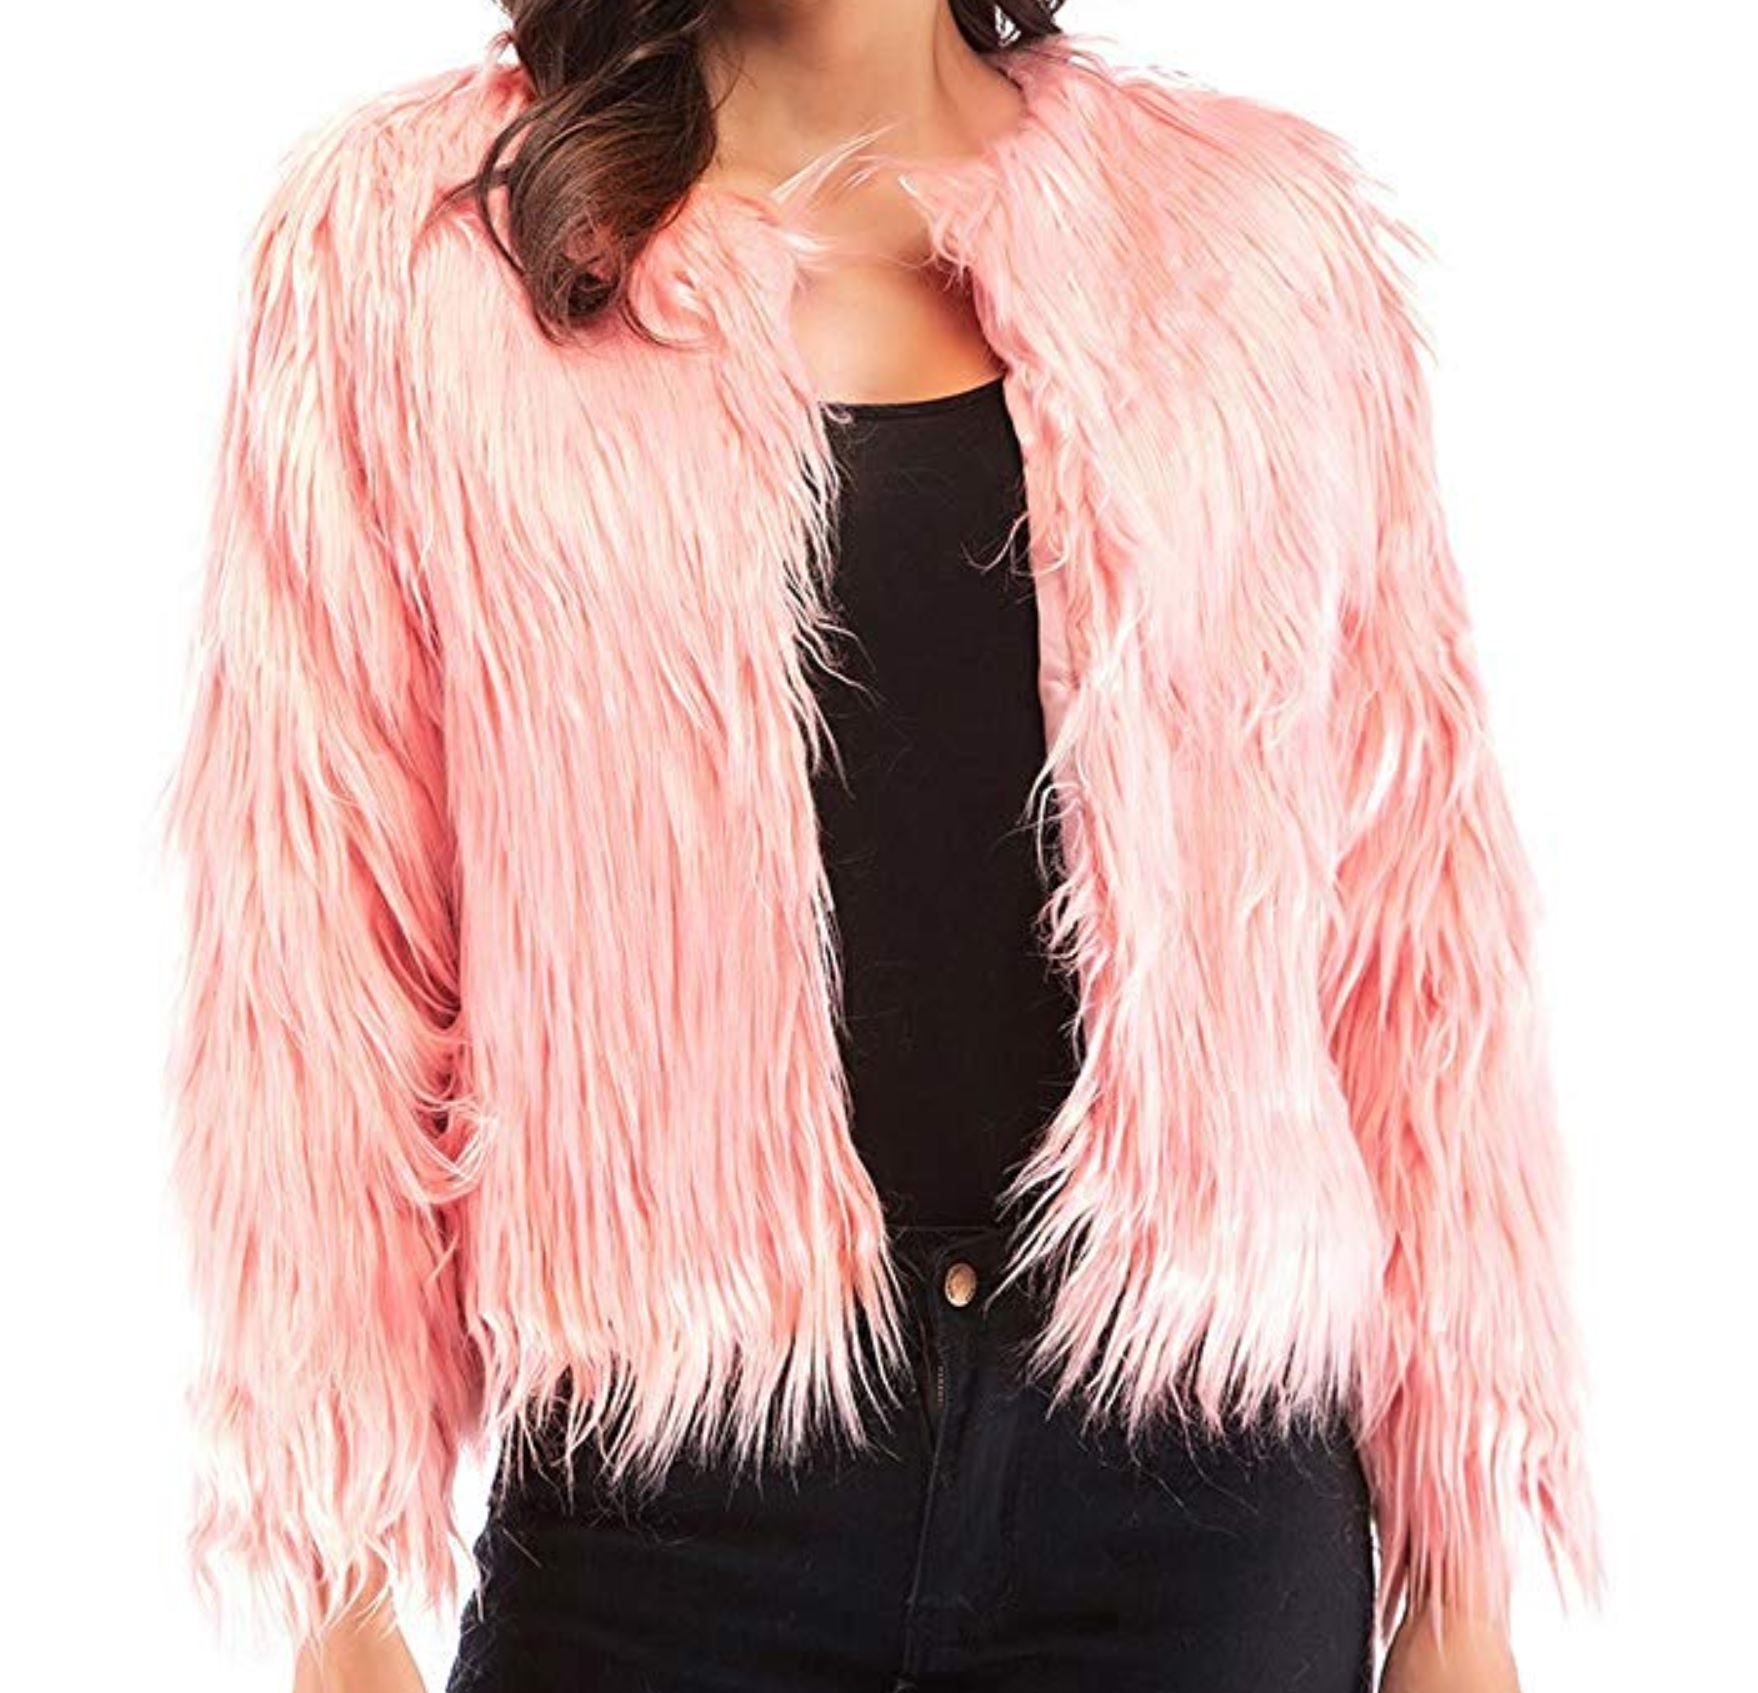 Pink Fur Jacket from amazon.com